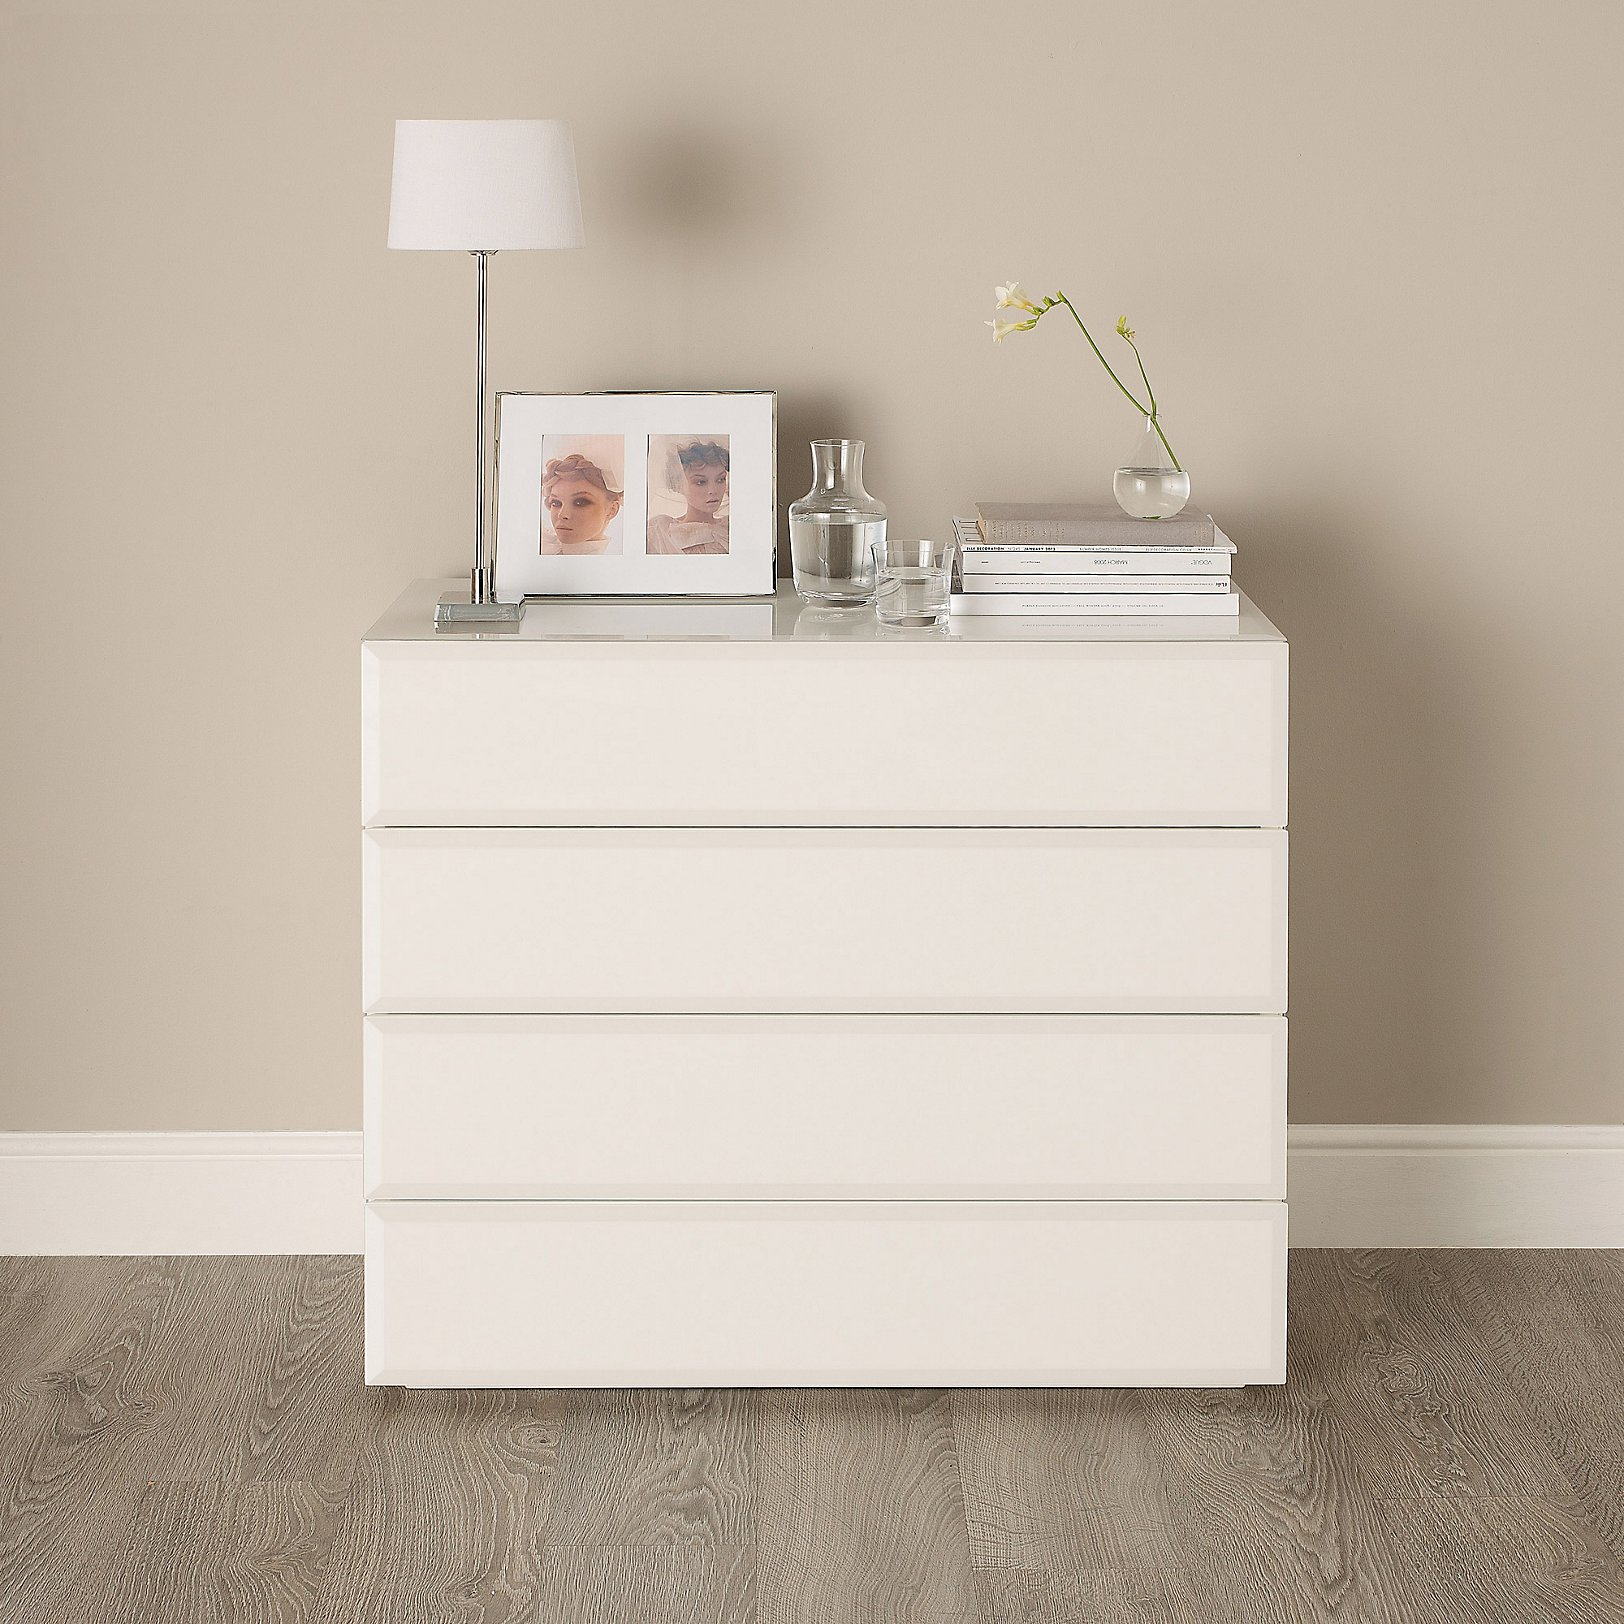 Carlton Glass Chest of Drawers   Bedroom Furniture   The White Company UK. Carlton Glass Chest of Drawers   Bedroom Furniture   The White